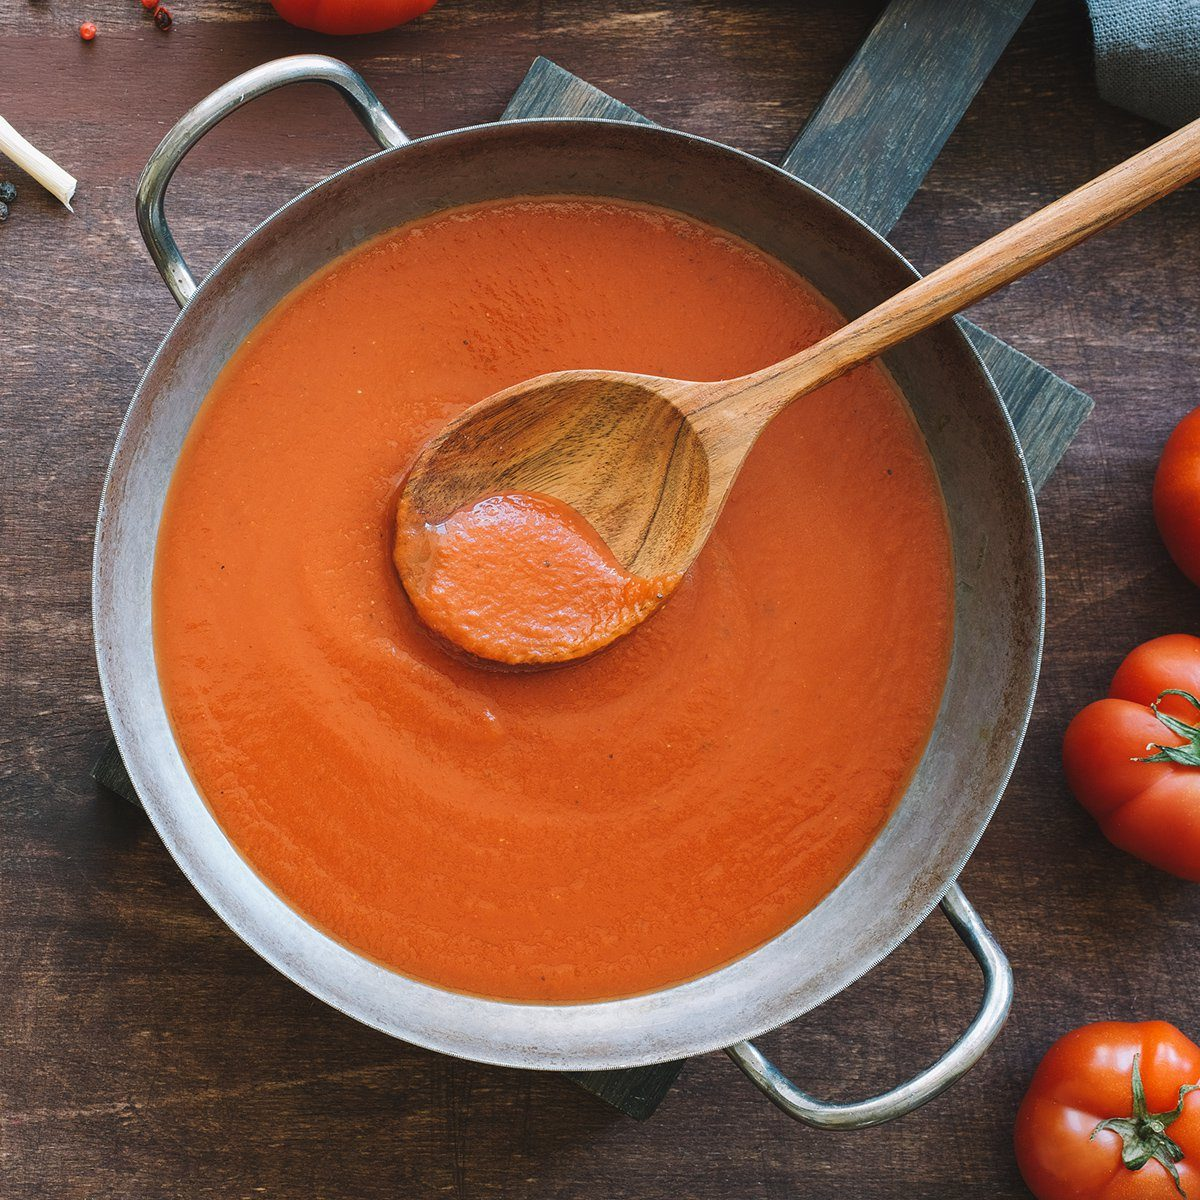 Tomato sauce in pan. Top view wooden brown background; Shutterstock ID 1380828656; Job (TFH, TOH, RD, BNB, CWM, CM): TOH